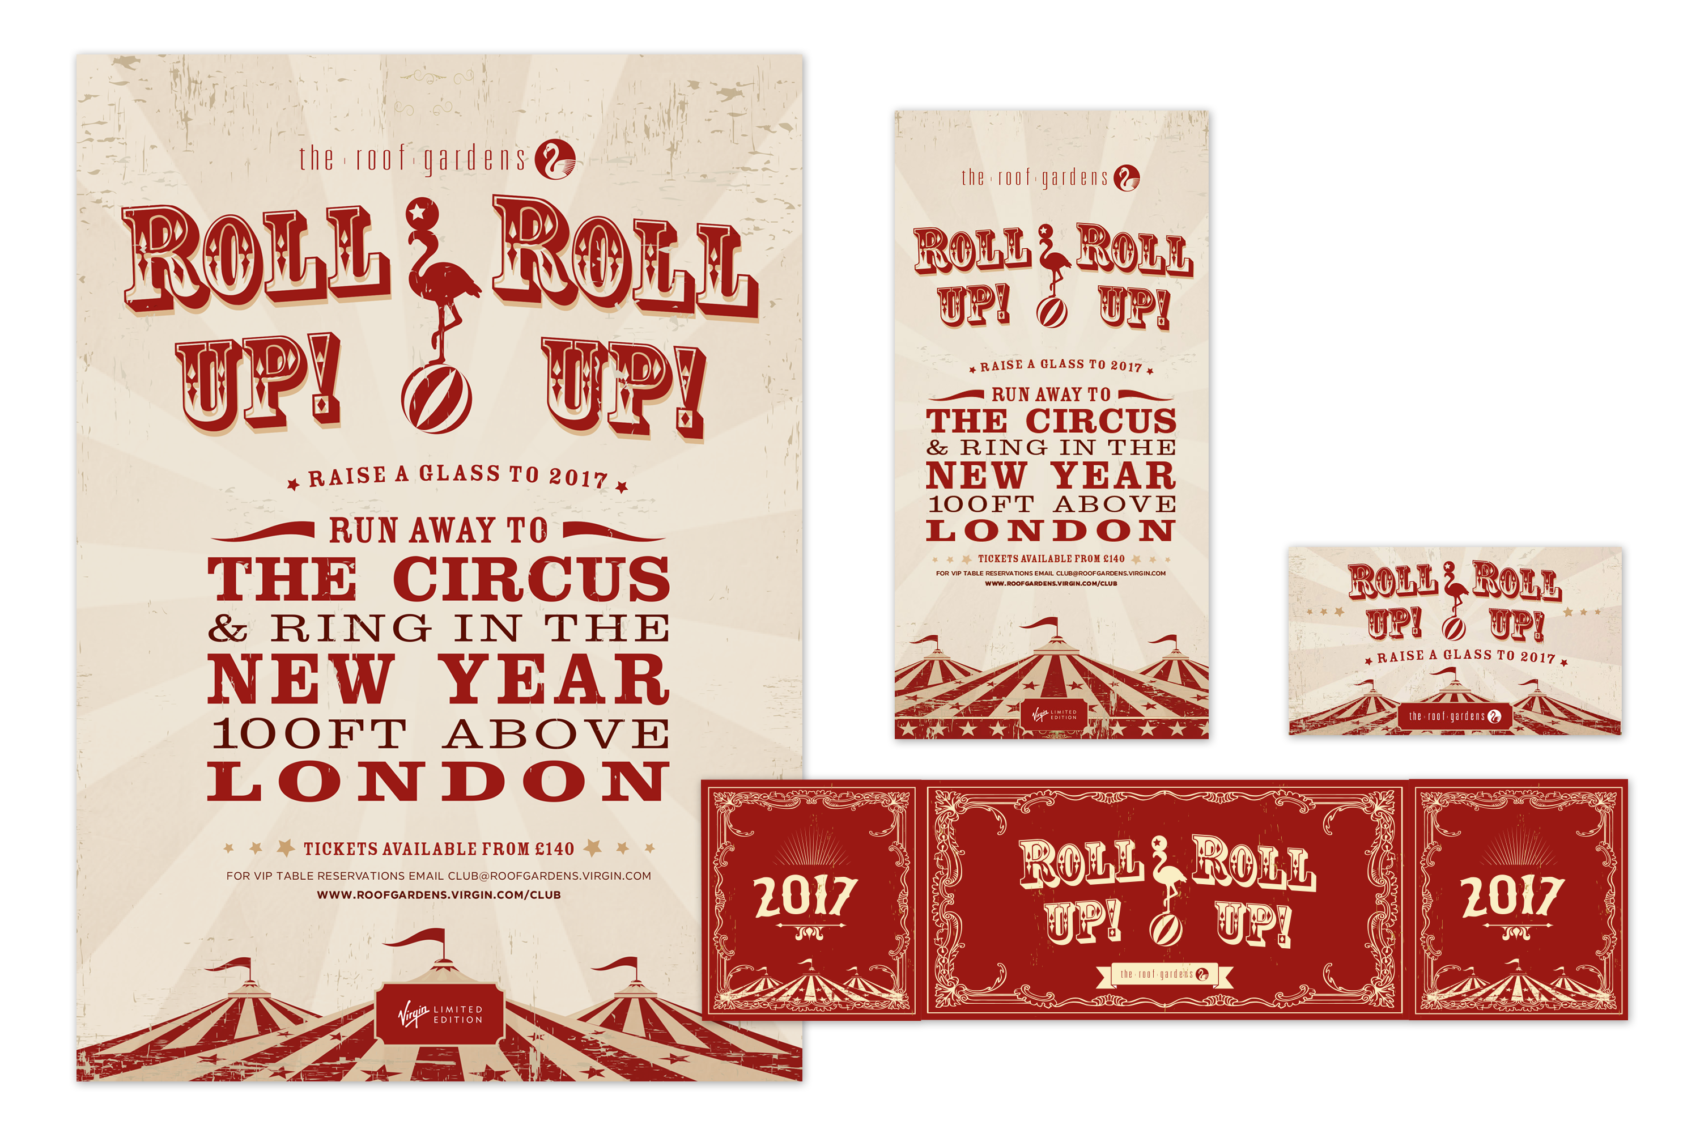 circus-event-collateral-3000x2000